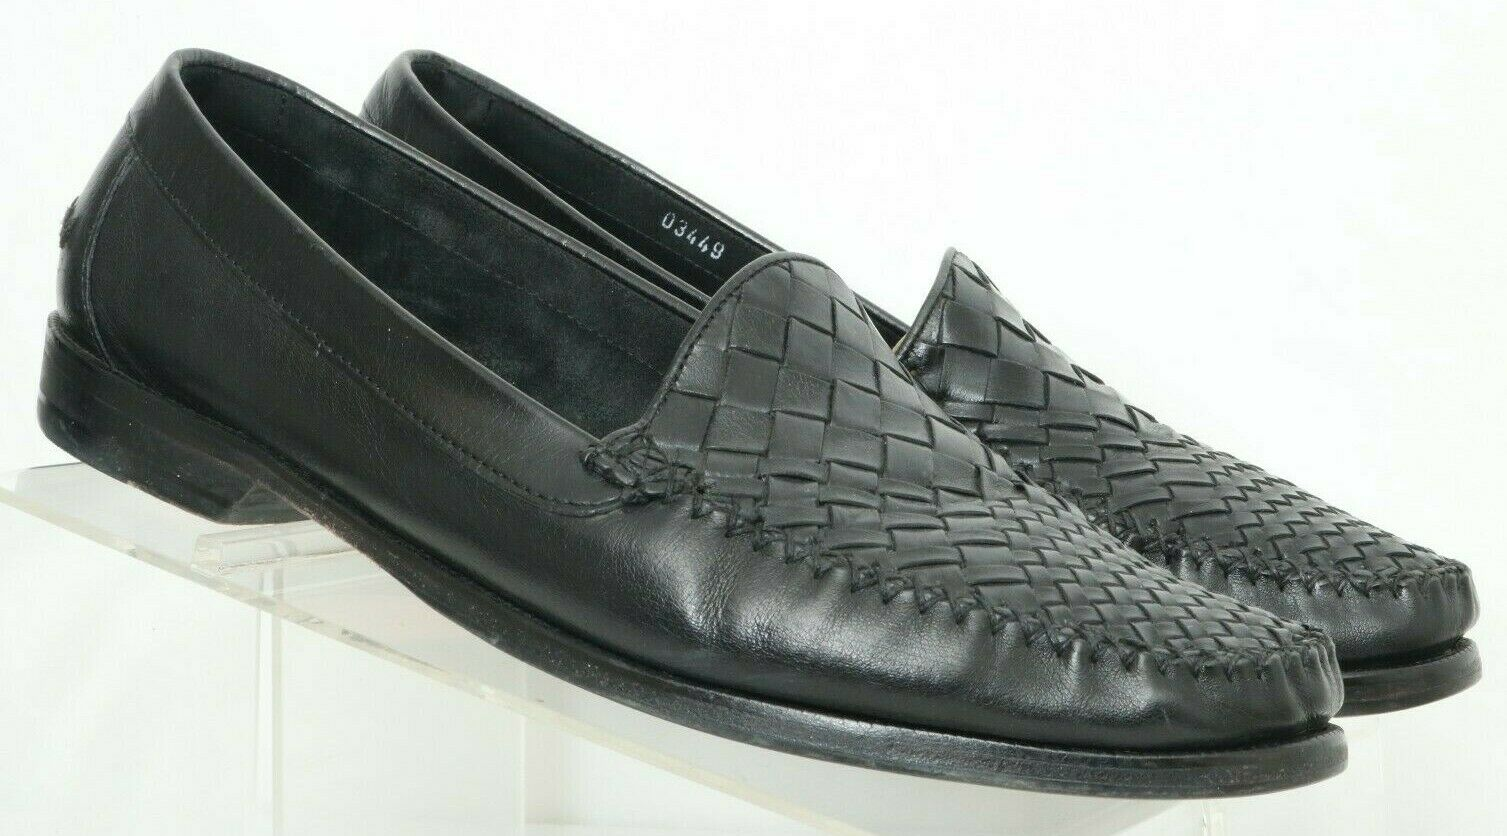 Cole Haan Country 03449 Black Woven Moc Toe Casual Loafers Men's US 9.5 D